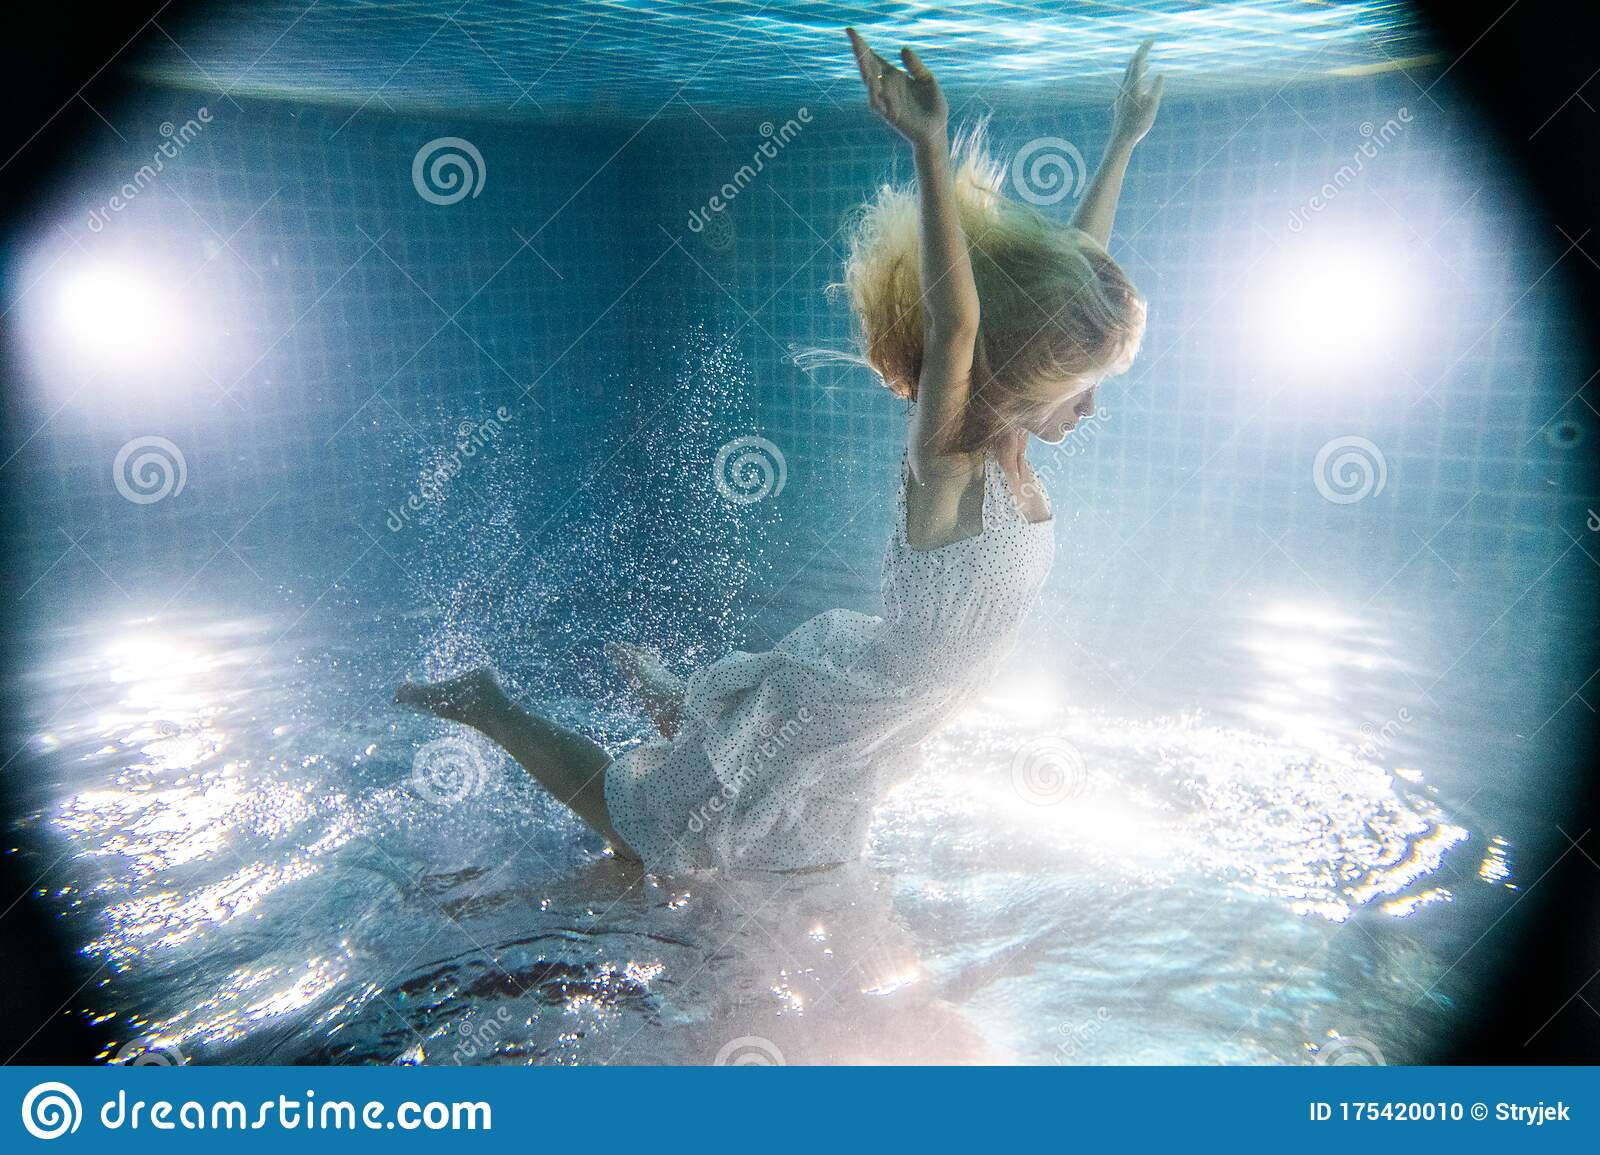 Underwater Photo Pretty Young Girl With Dark Long Hair